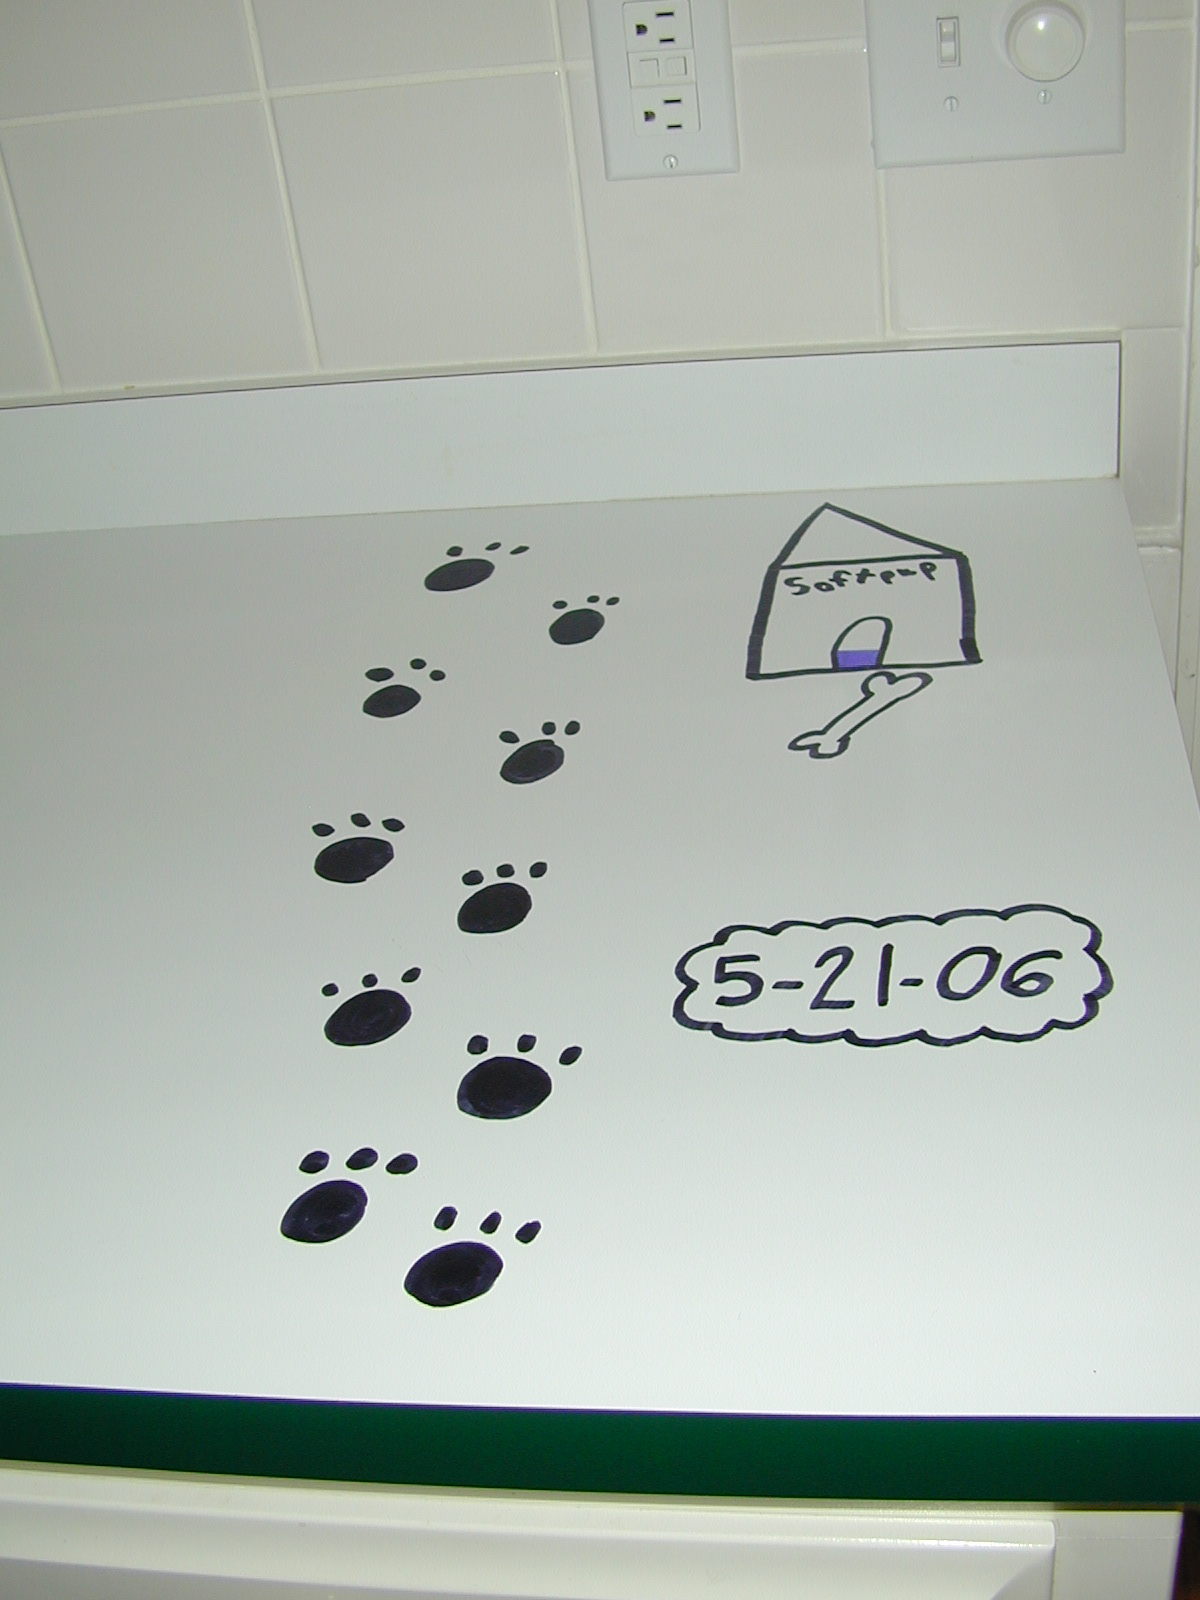 Pawprints from the dog she so dearly wanted (and still wants!)